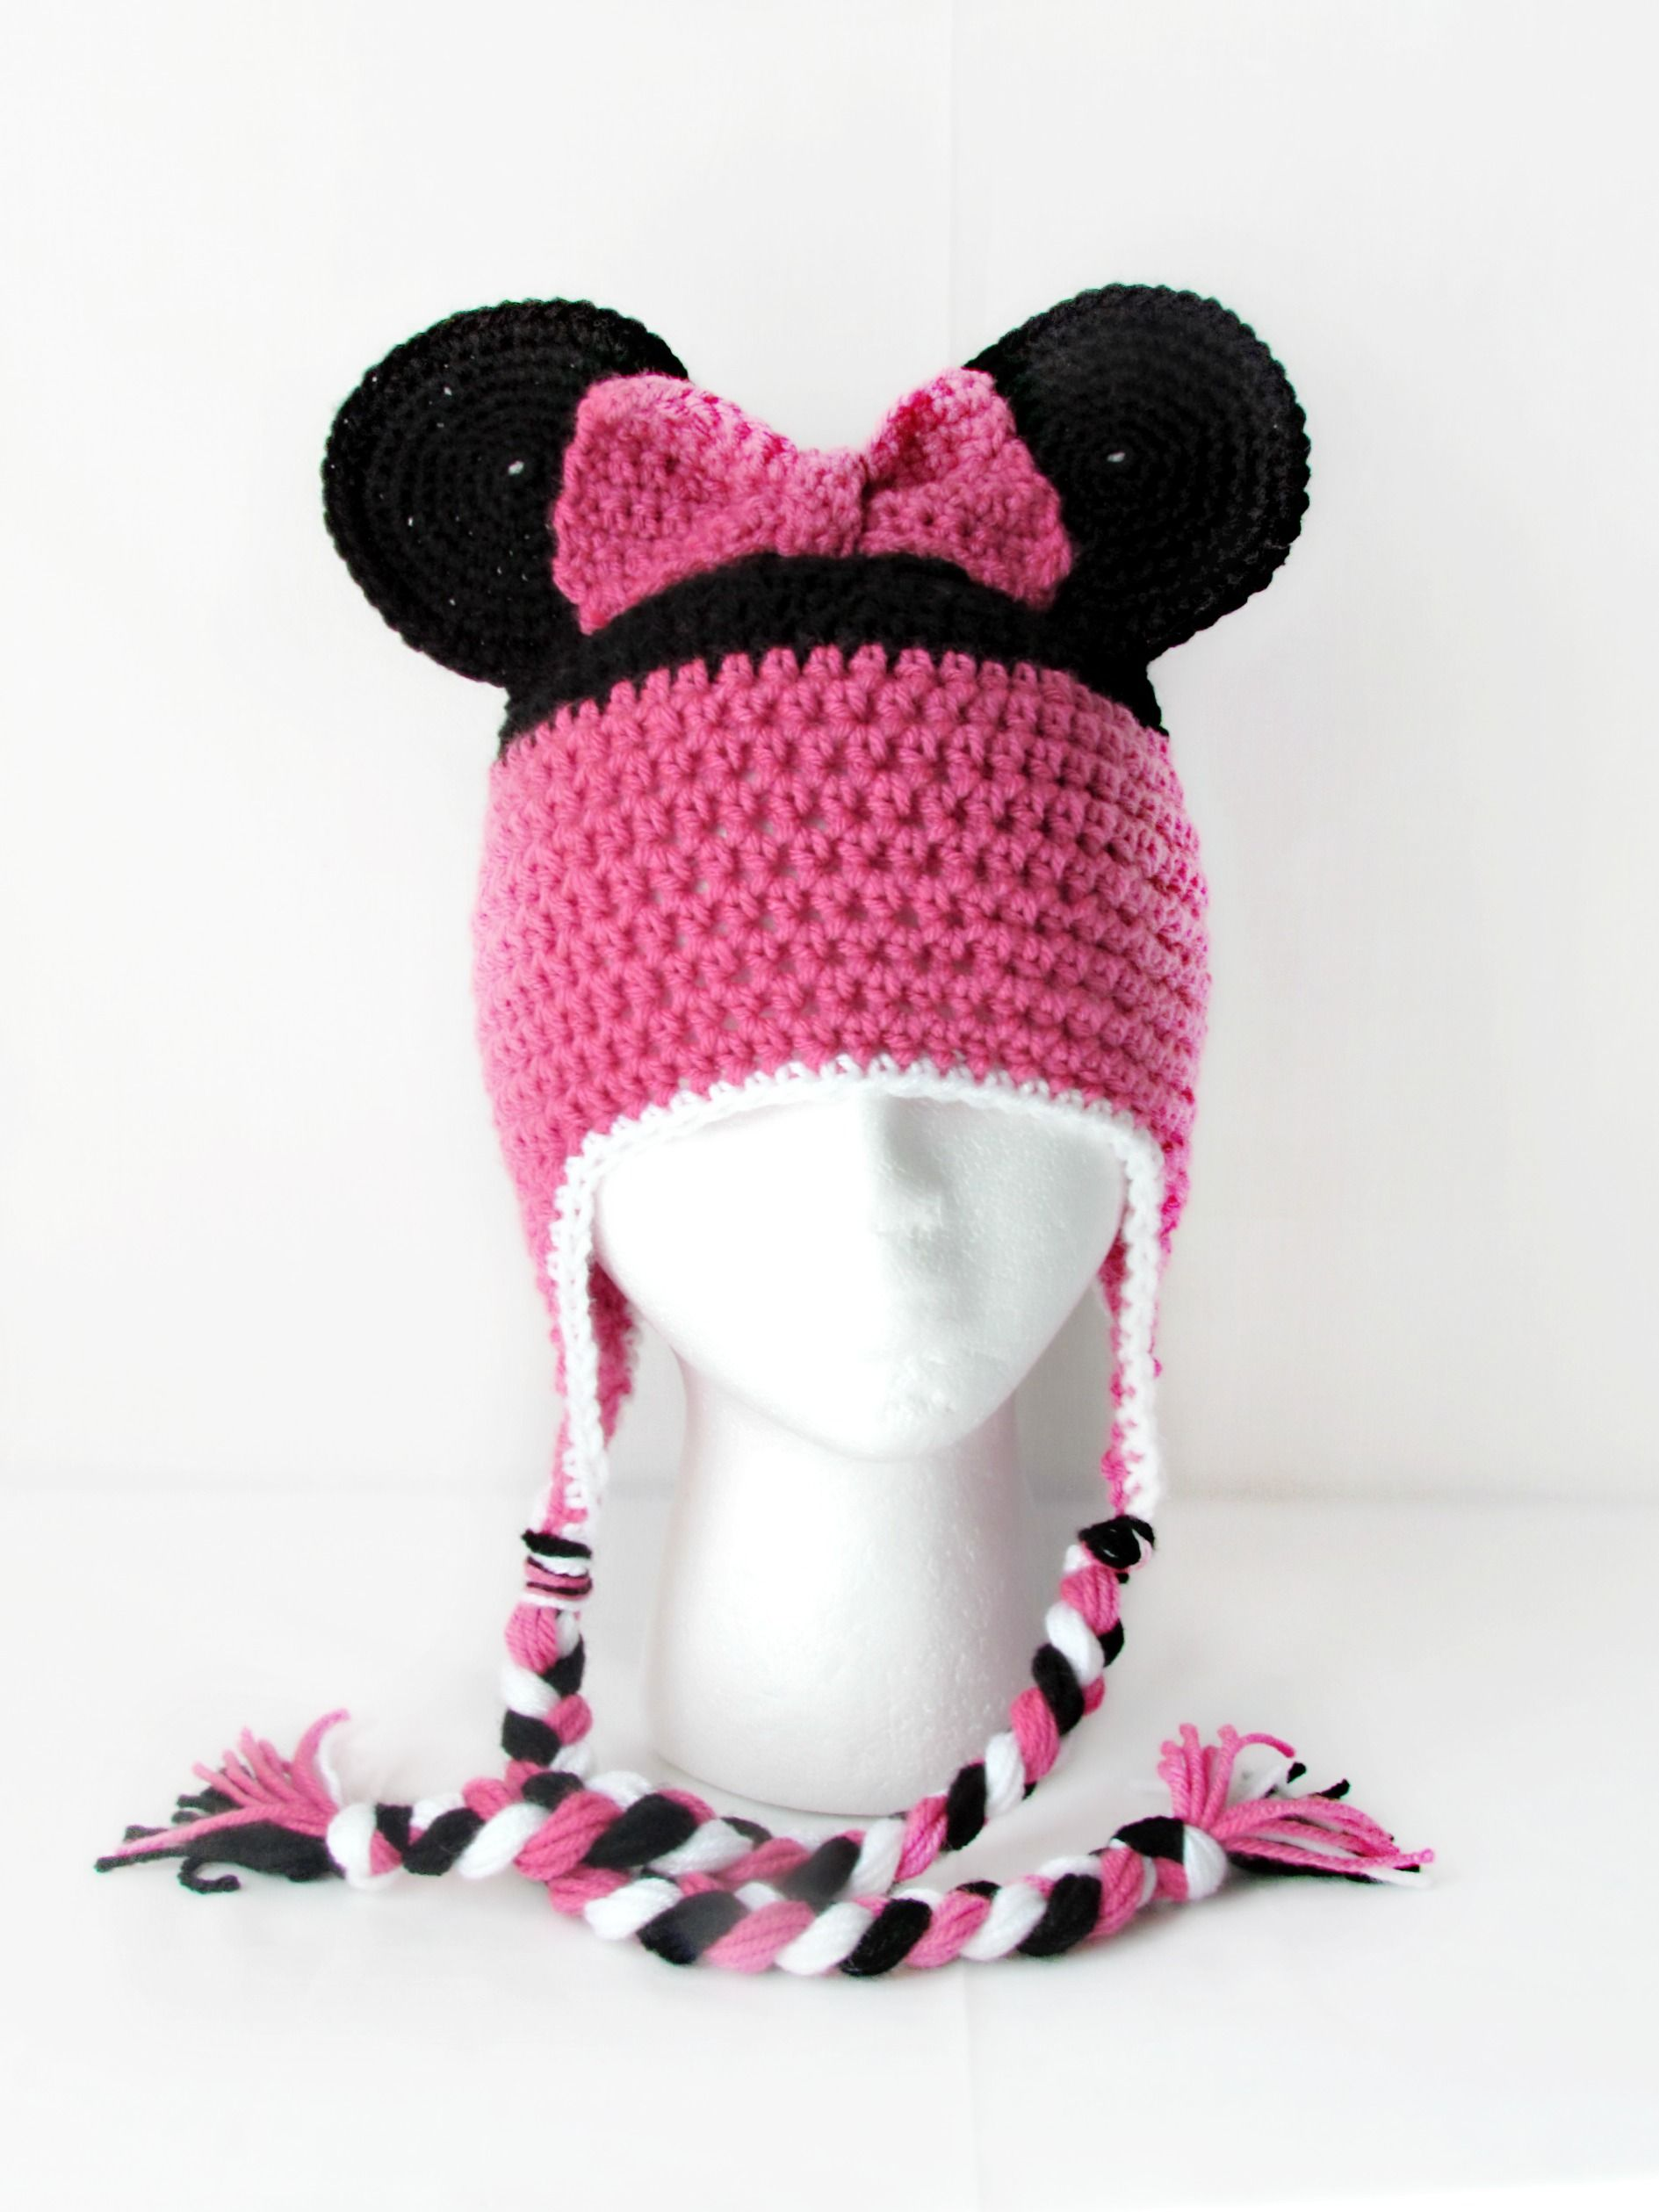 Crochet Minnie Mouse hat ~Cute | genny | Pinterest | Gorros, Tejido ...